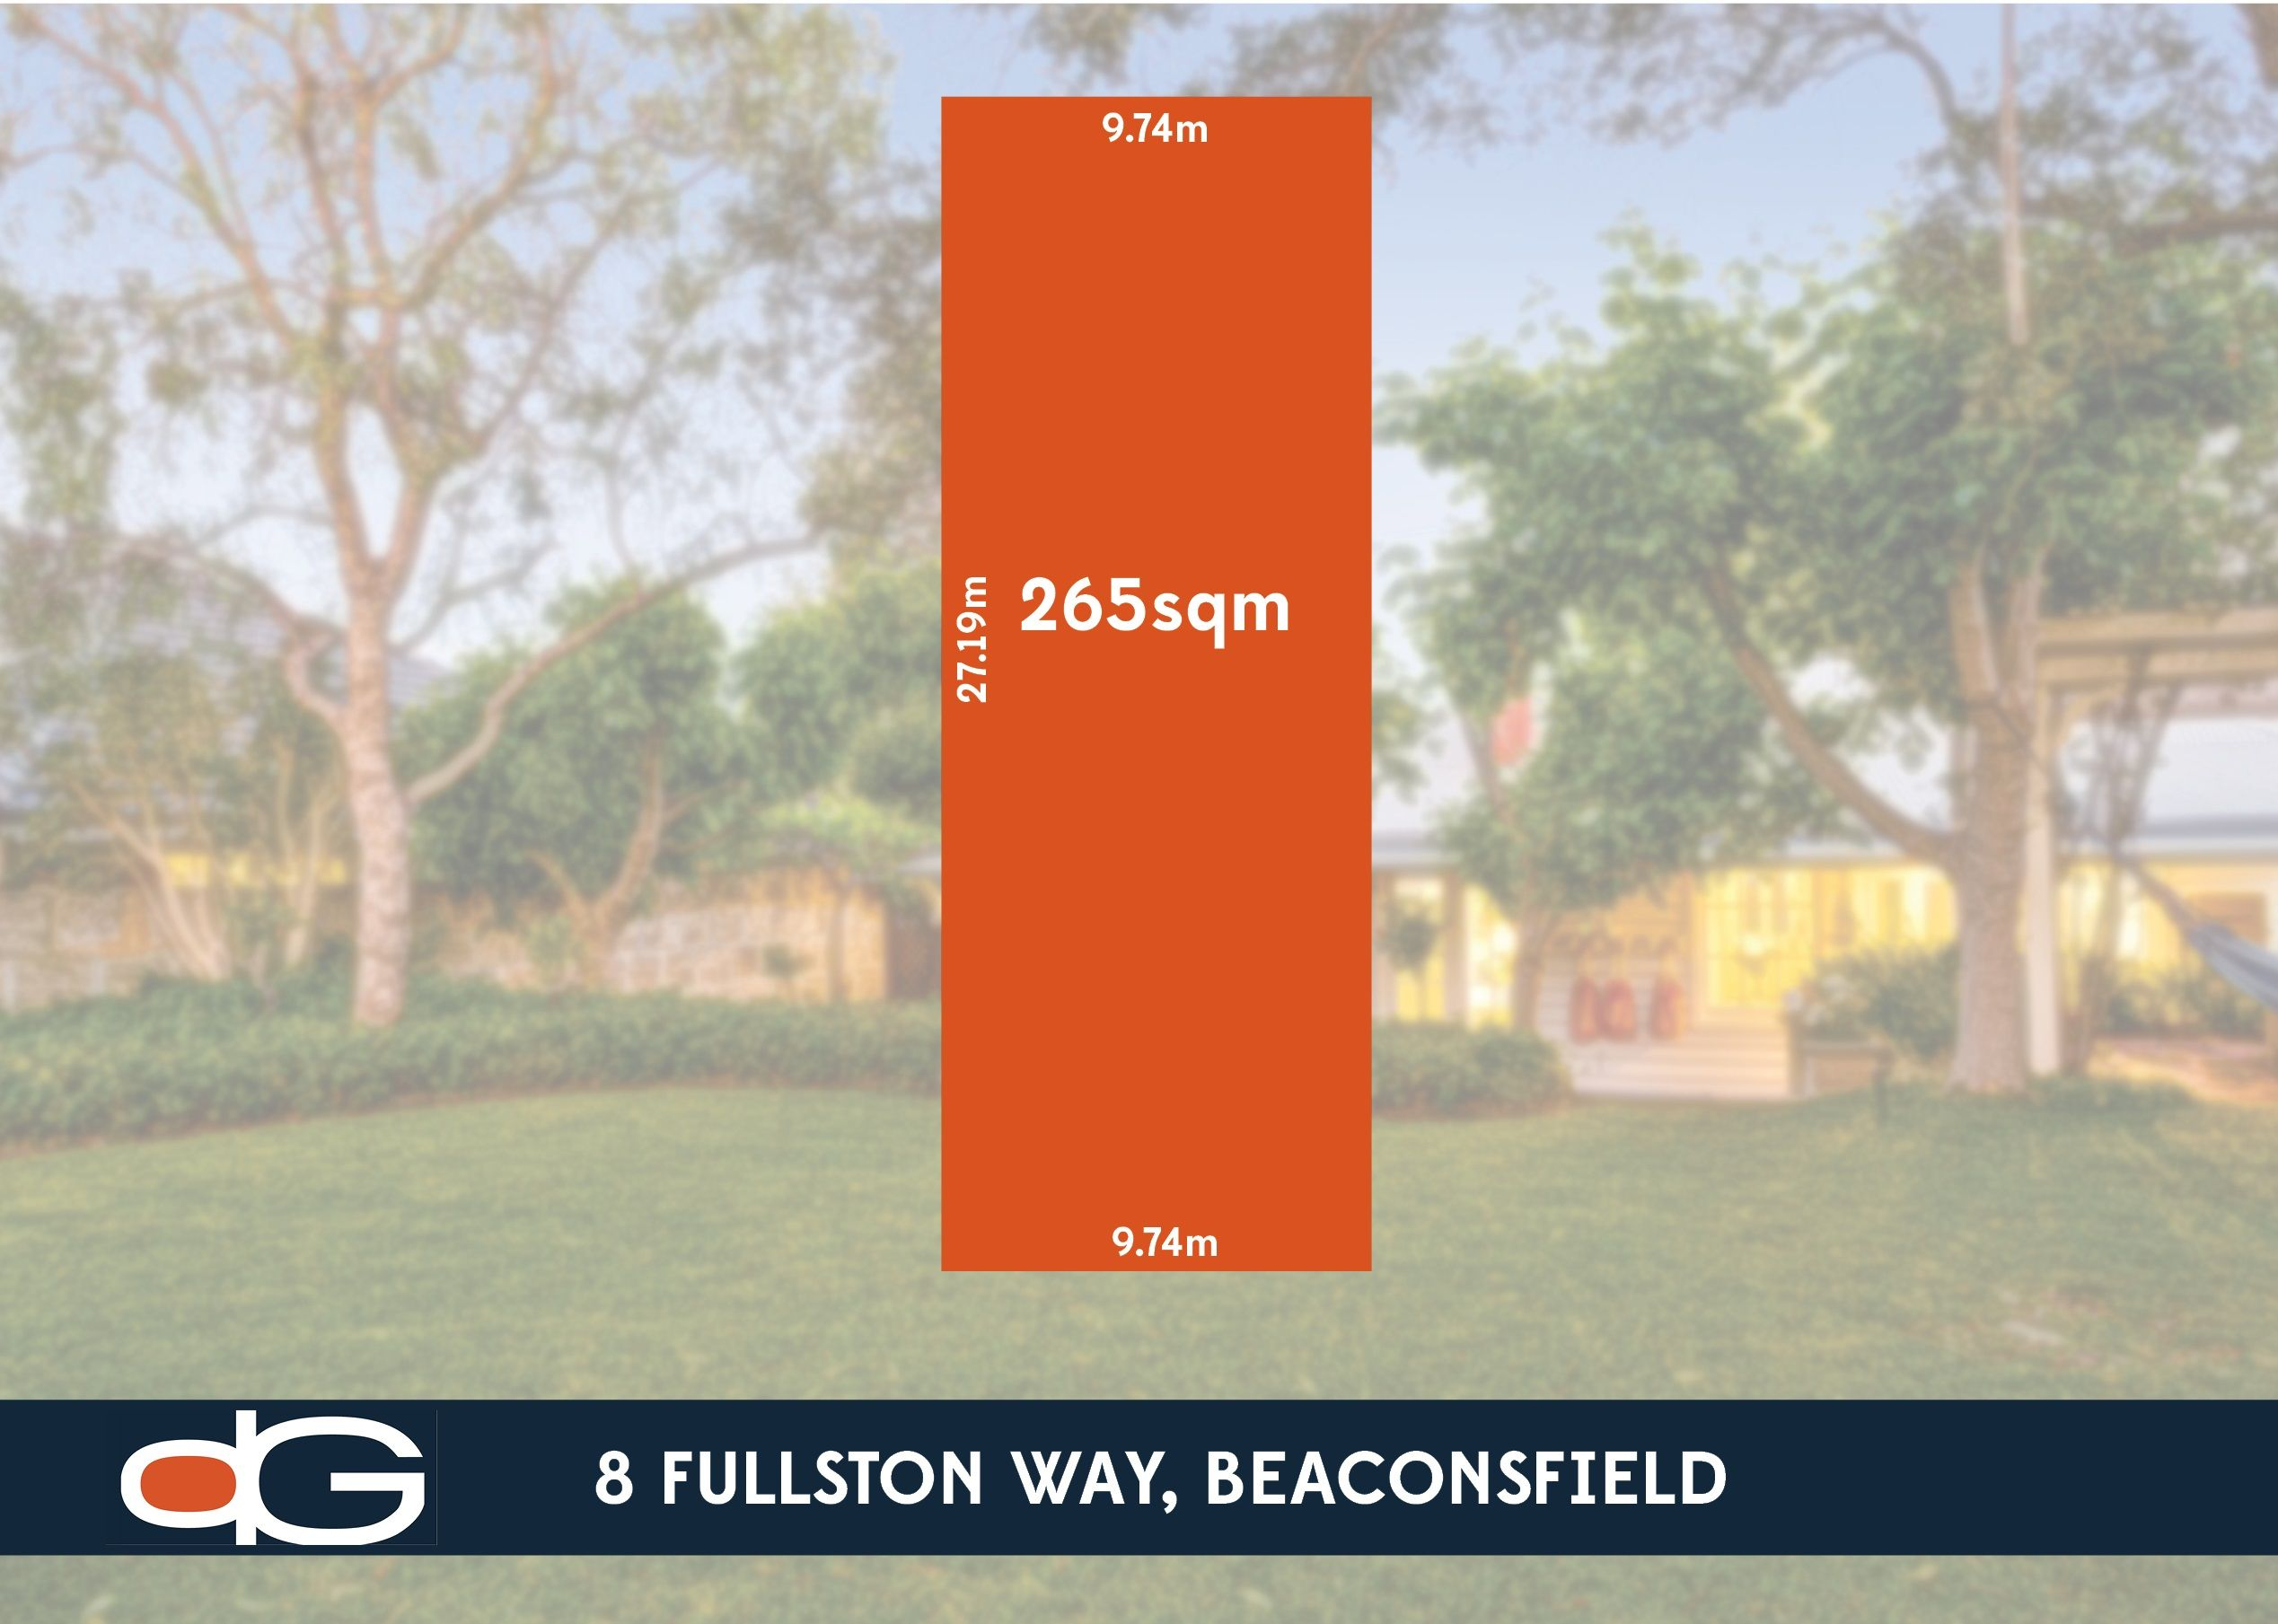 8 Fullston Way, Beaconsfield